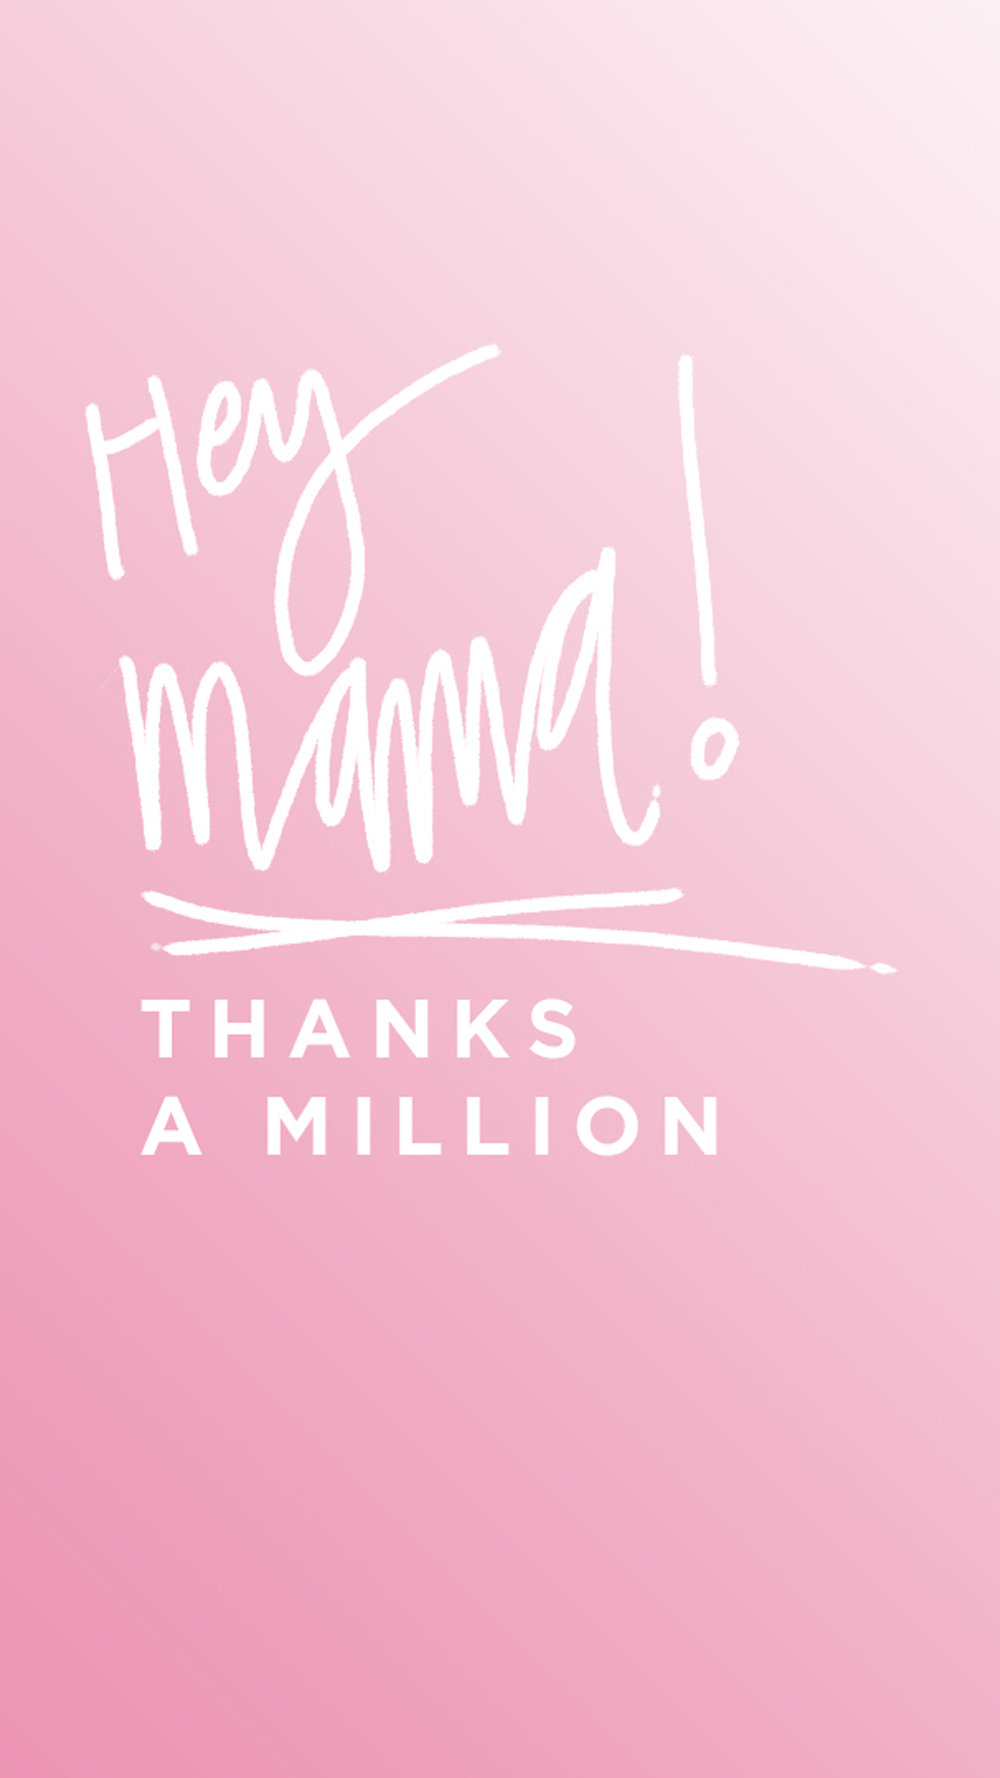 even-vanity-ends-instastory-mothersday-5.jpg